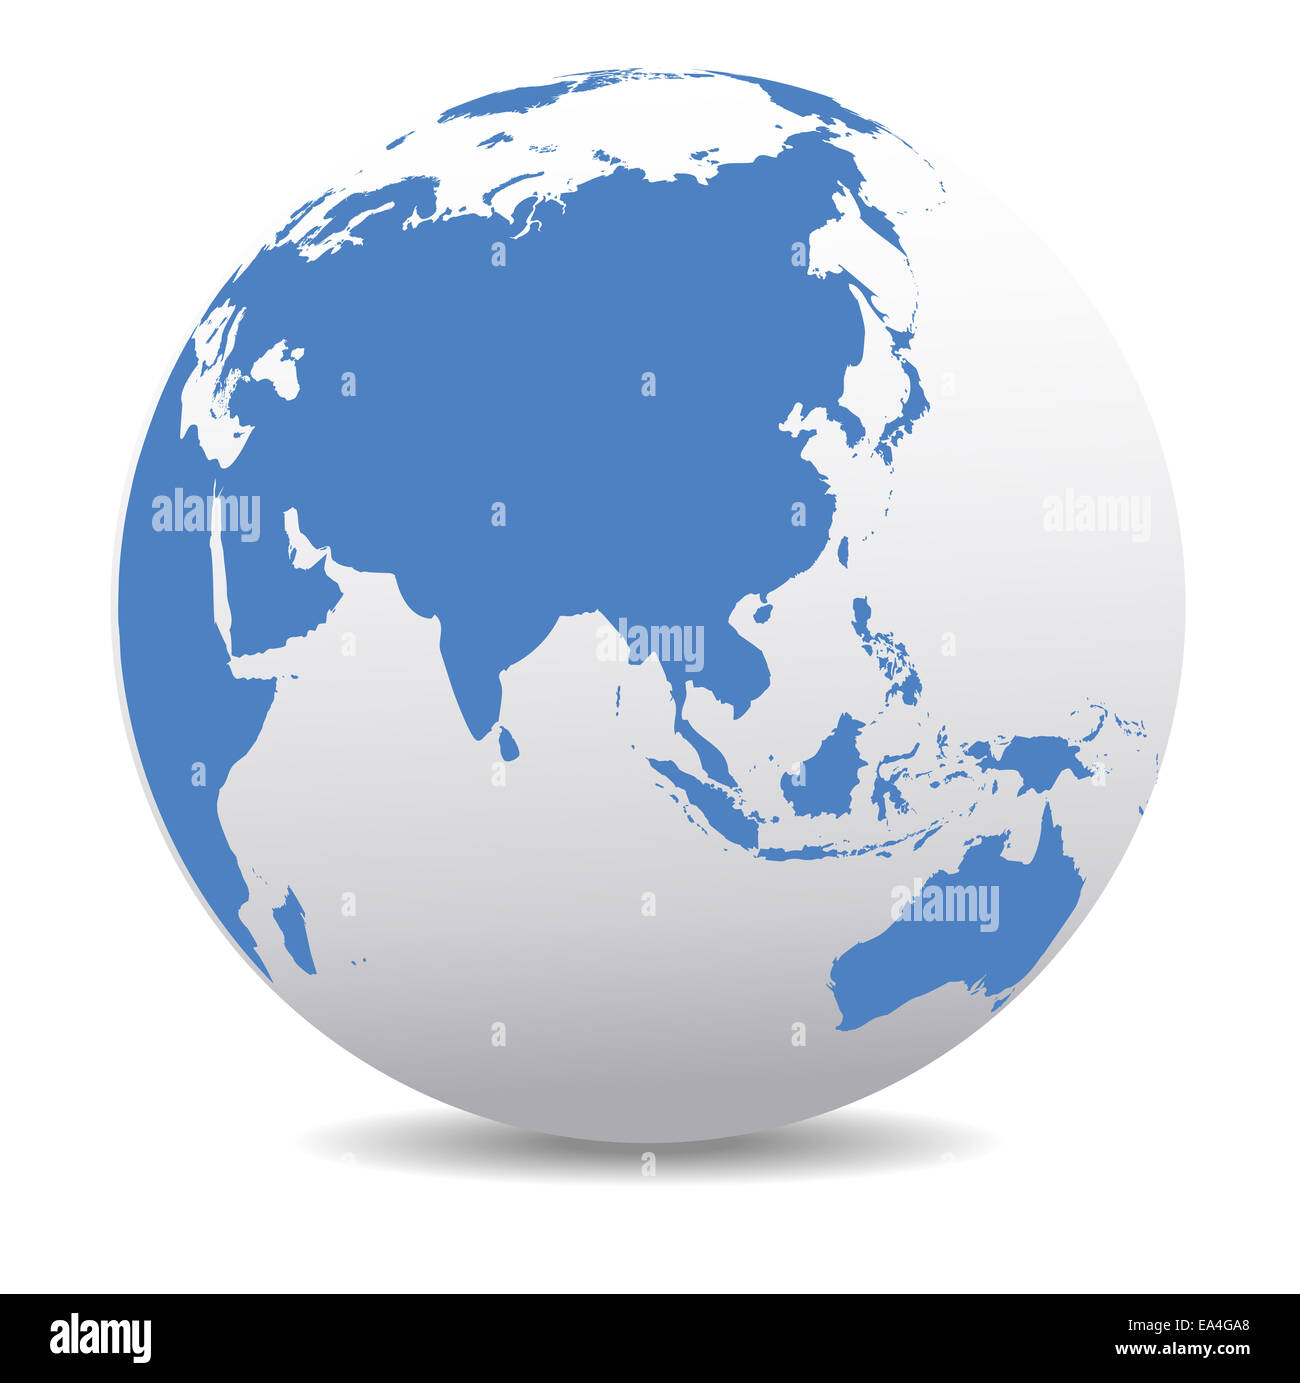 Asia china japan world earth icon globe map stock photo 75088672 asia china japan world earth icon globe map gumiabroncs